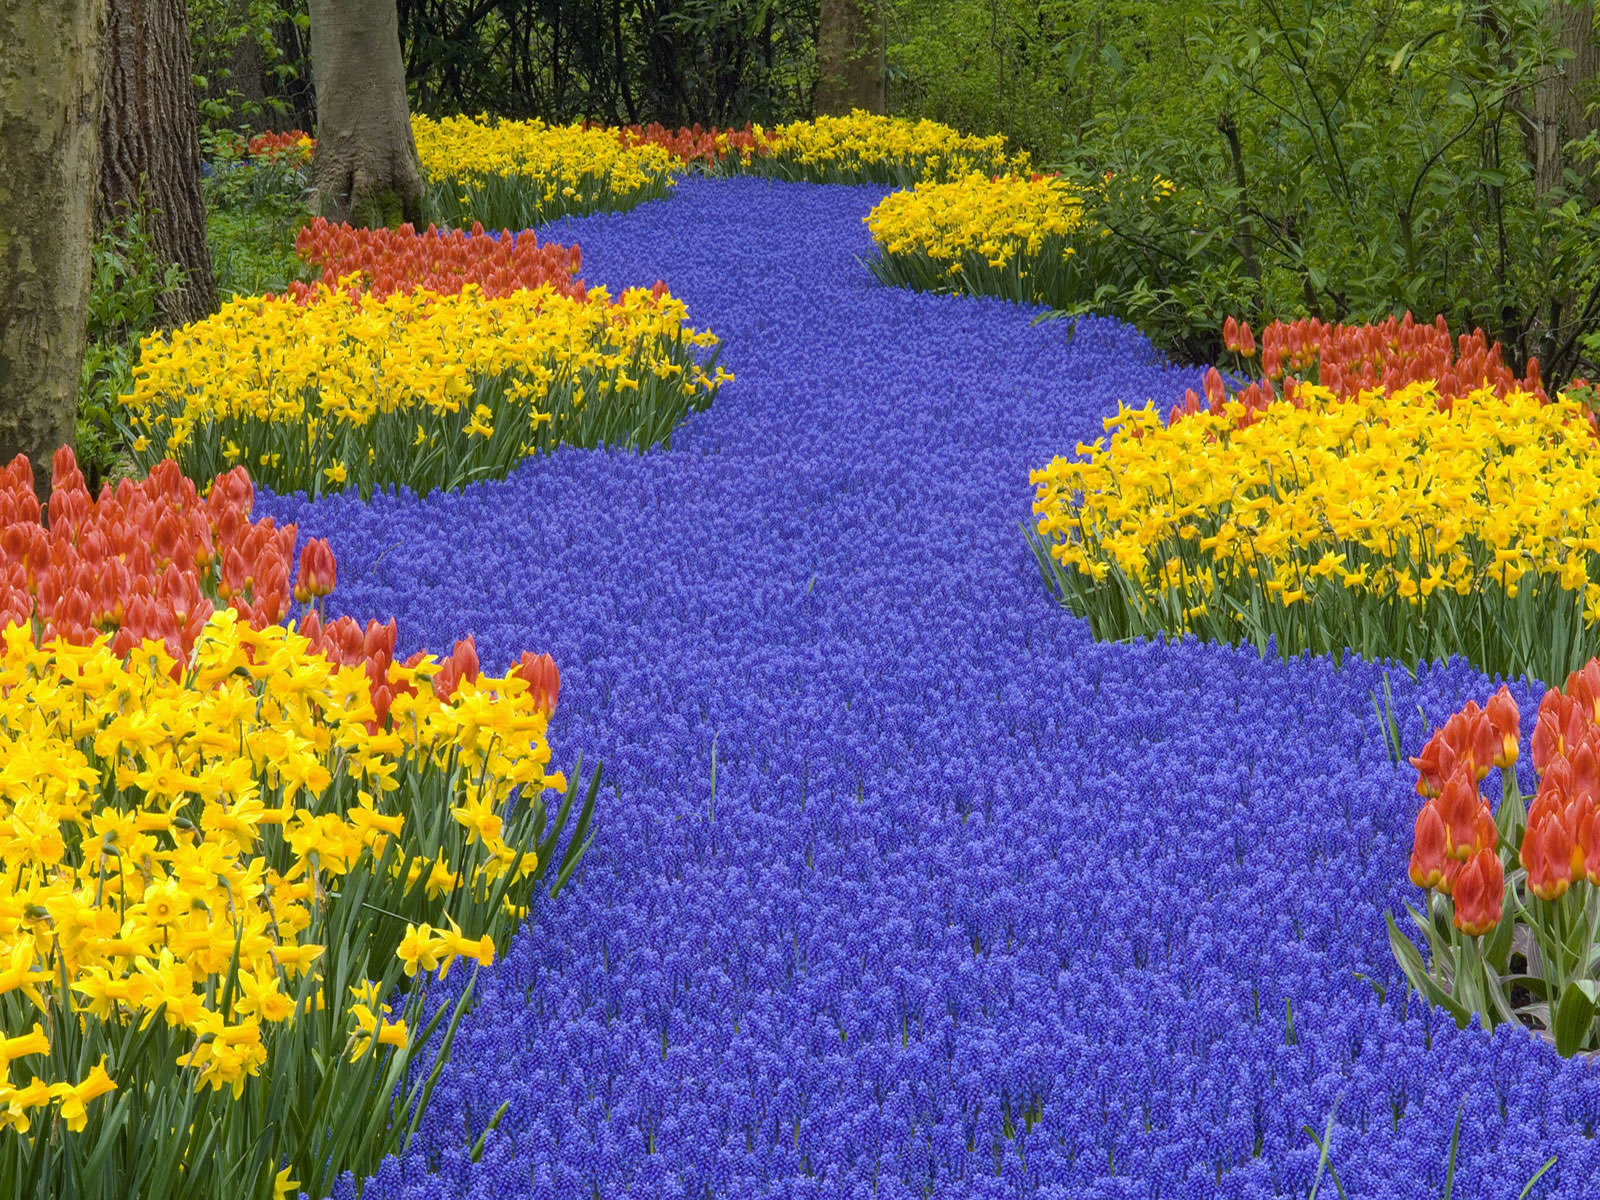 Amazing flower garden 1600x1200 for Amazing flower gardens